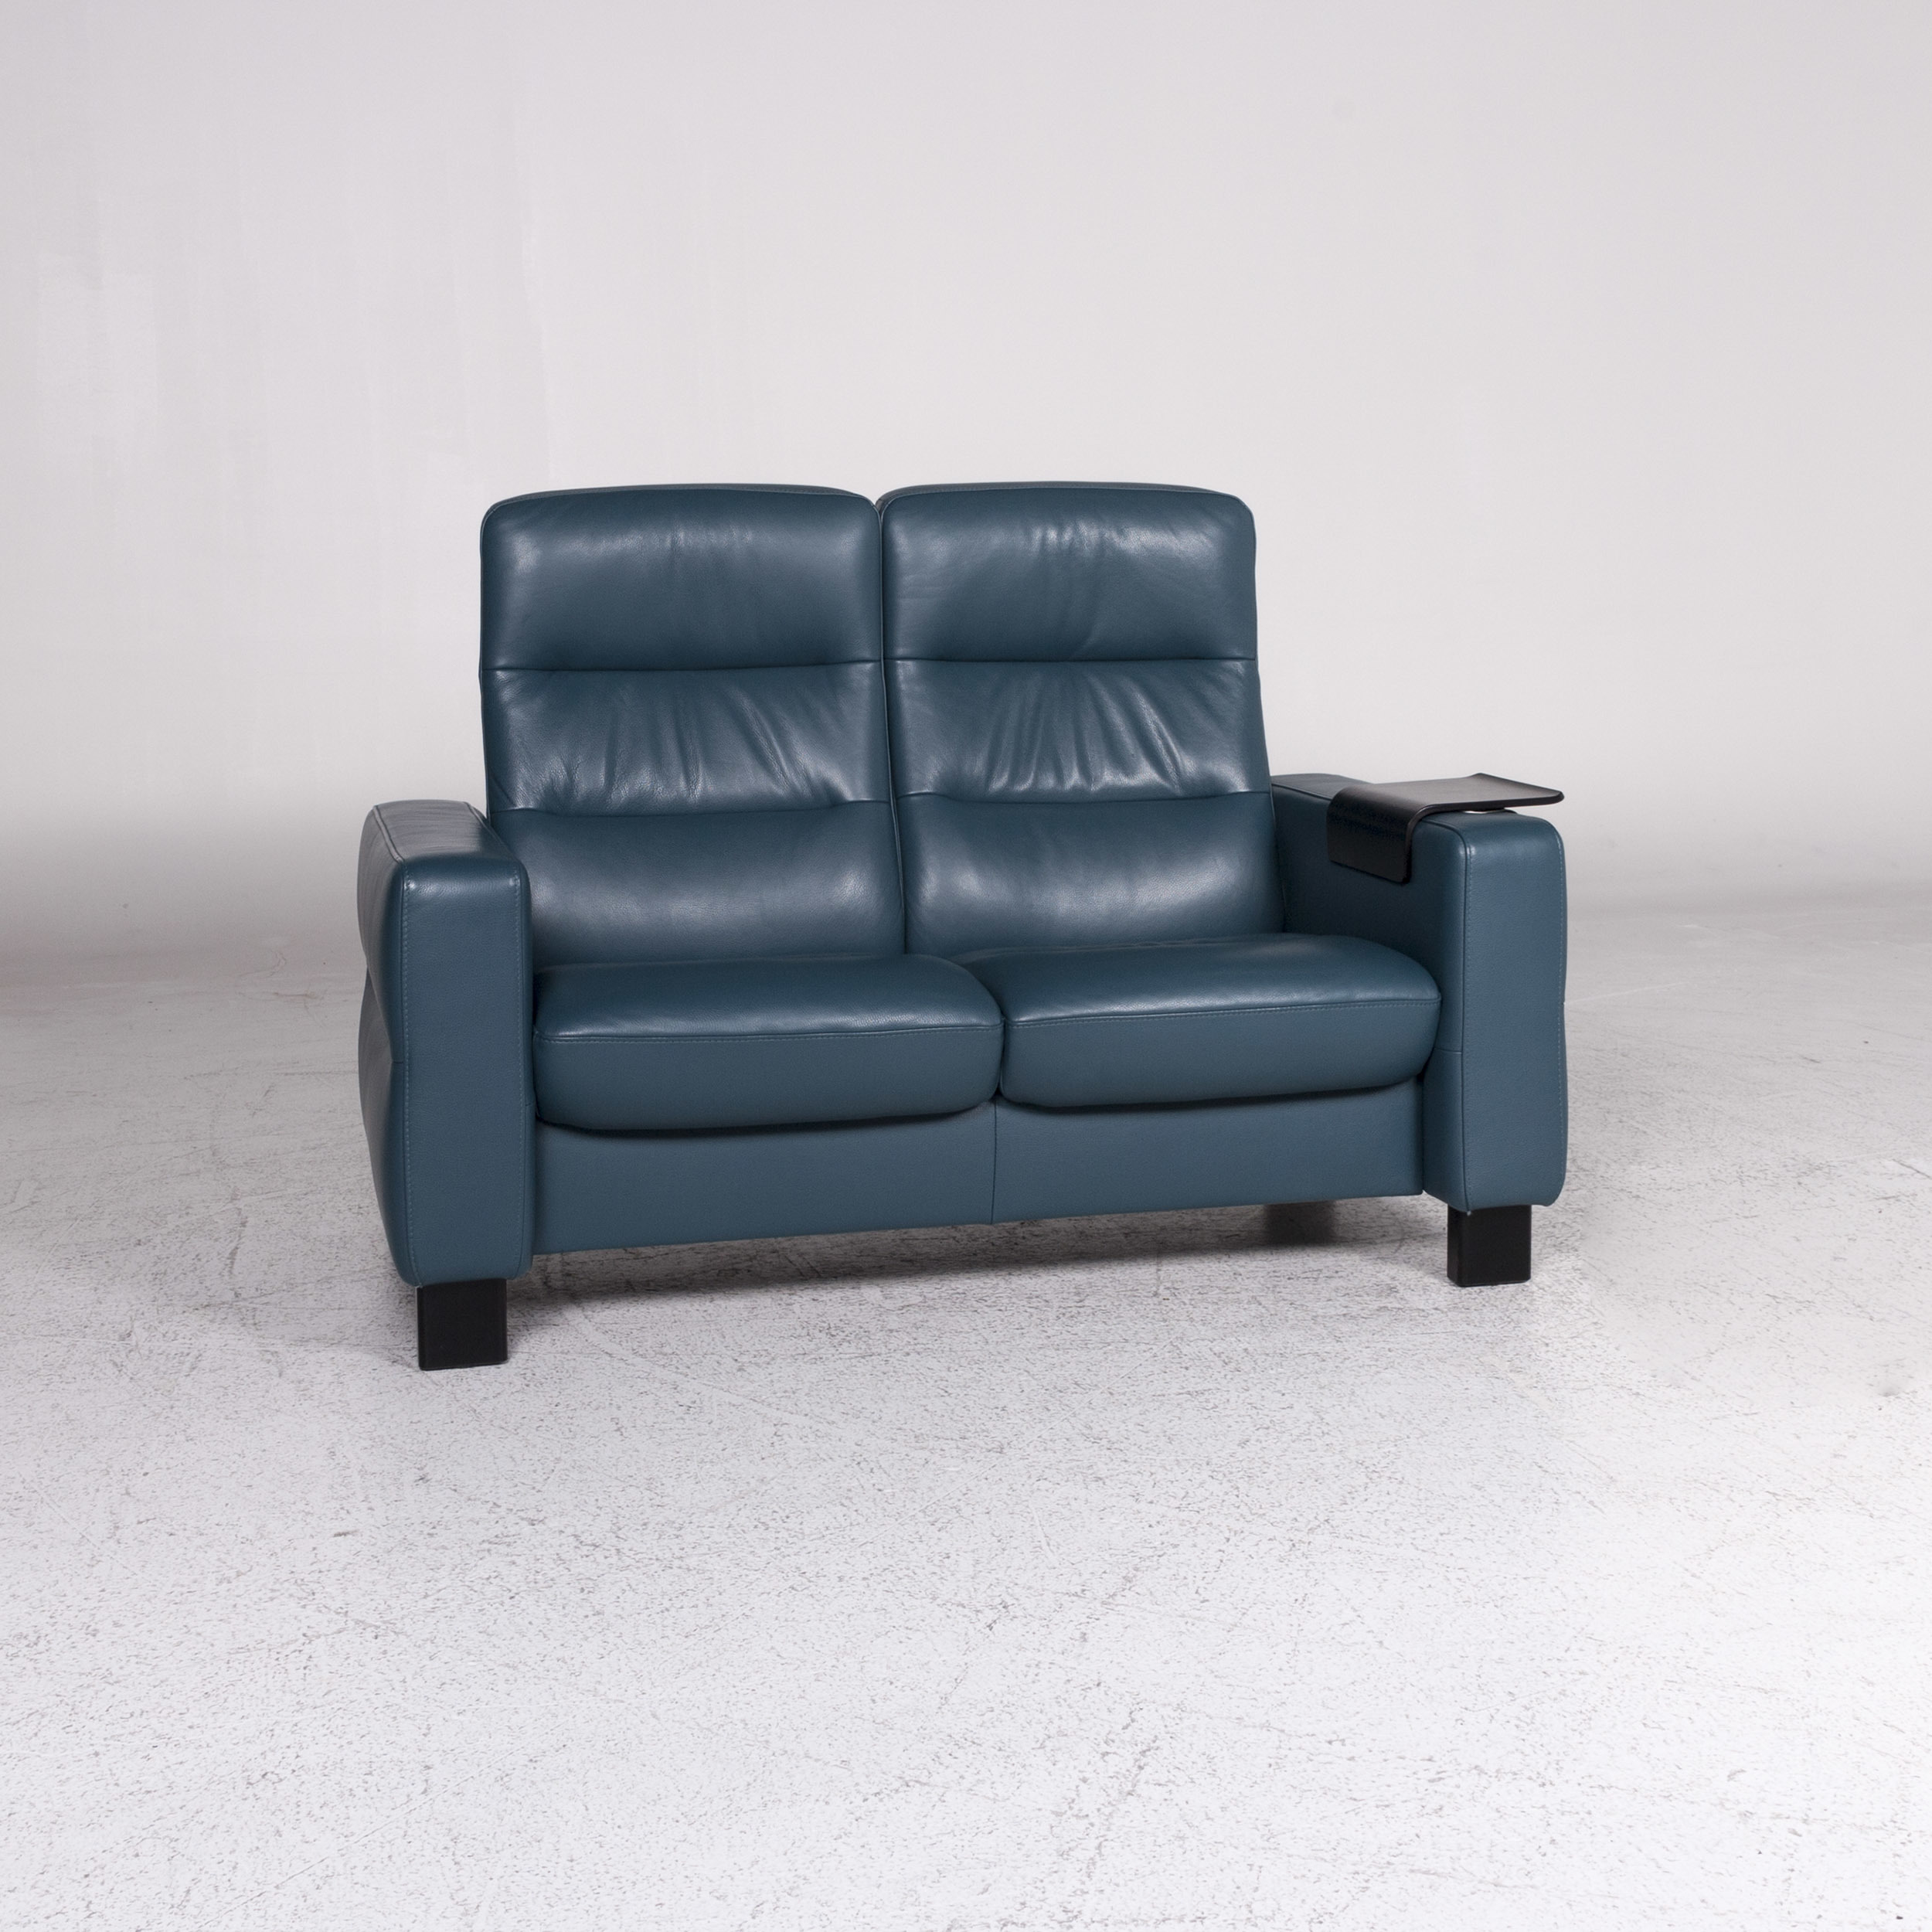 Couch Petrol Stressless Designer Leather Sofa Blue Petrol Two Seater Couch 9648